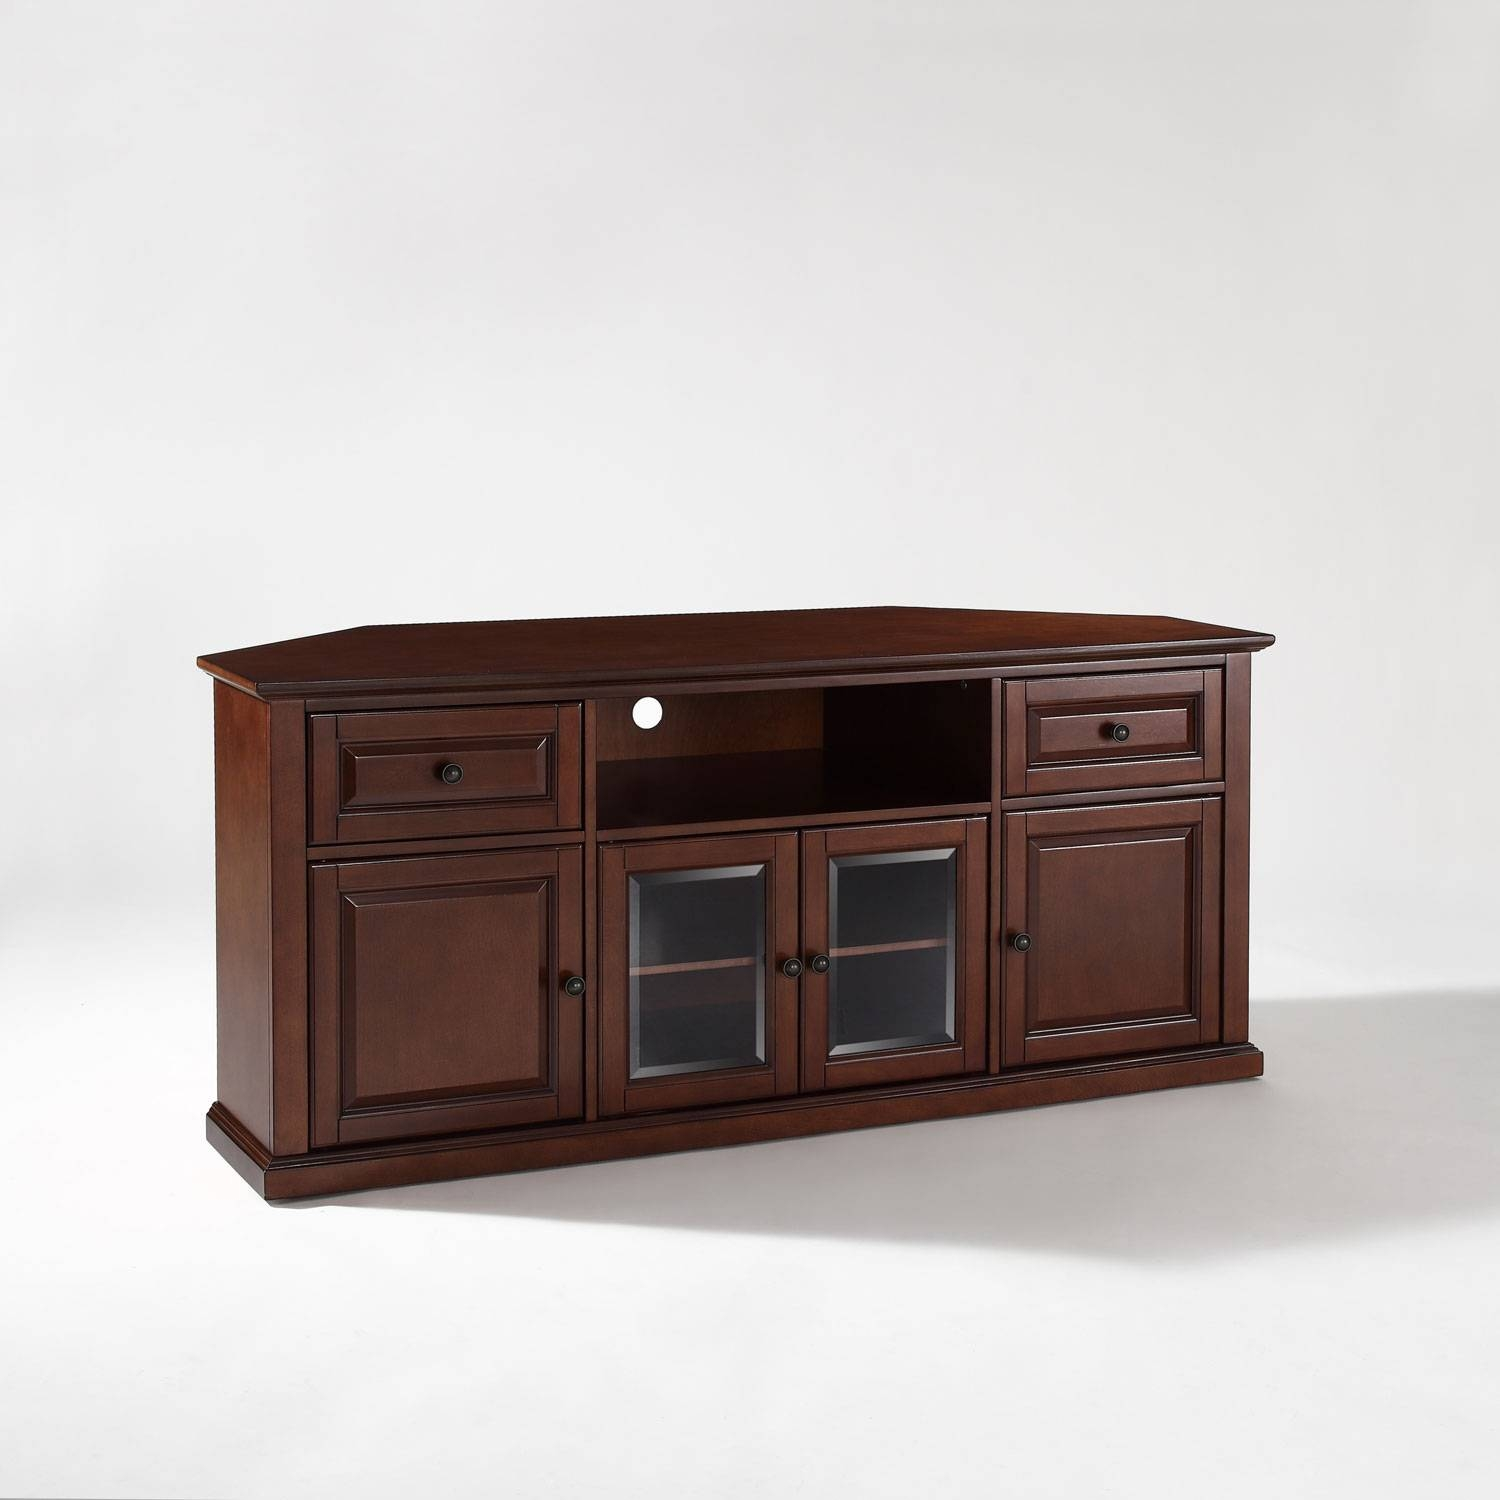 Tv Stands & Cabinets On Sale | Bellacor within Triangular Tv Stands (Image 14 of 15)